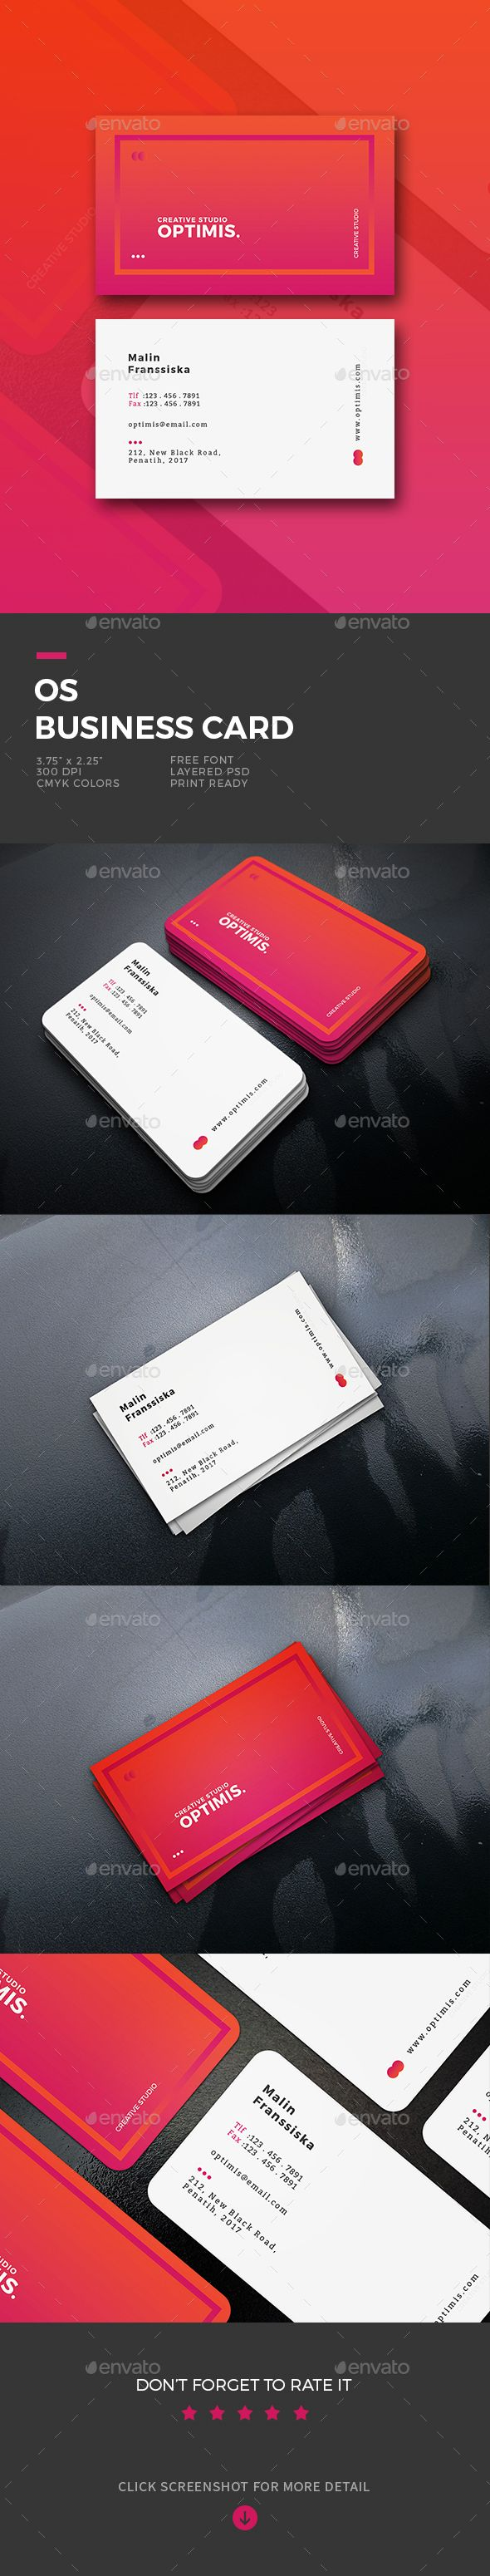 os business card business cards print templates download here httpsgraphicrivernetitemos business card19625101refalena994